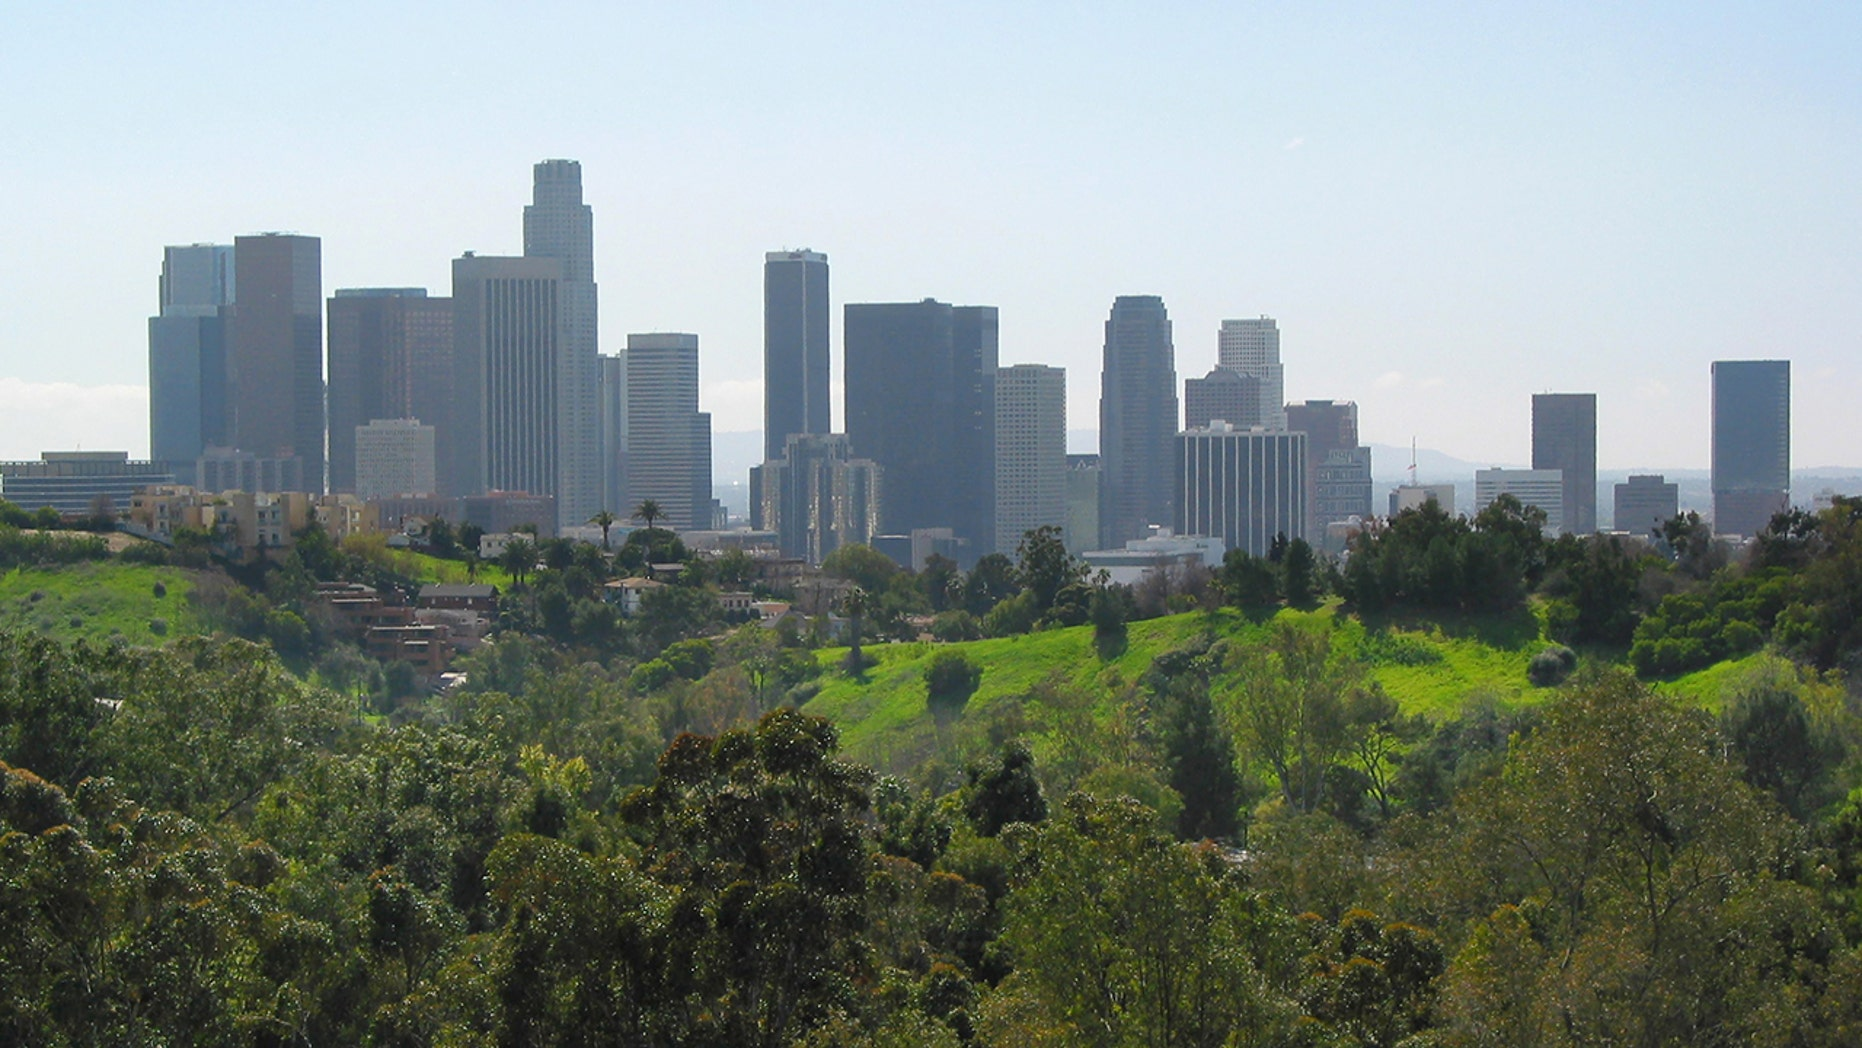 An MS-13 gang member has been sentenced to life in prison for the rape and murder of a 13-year-old girl in 2001, whose body was found in Los Angeles' Elysian Park (pictured)